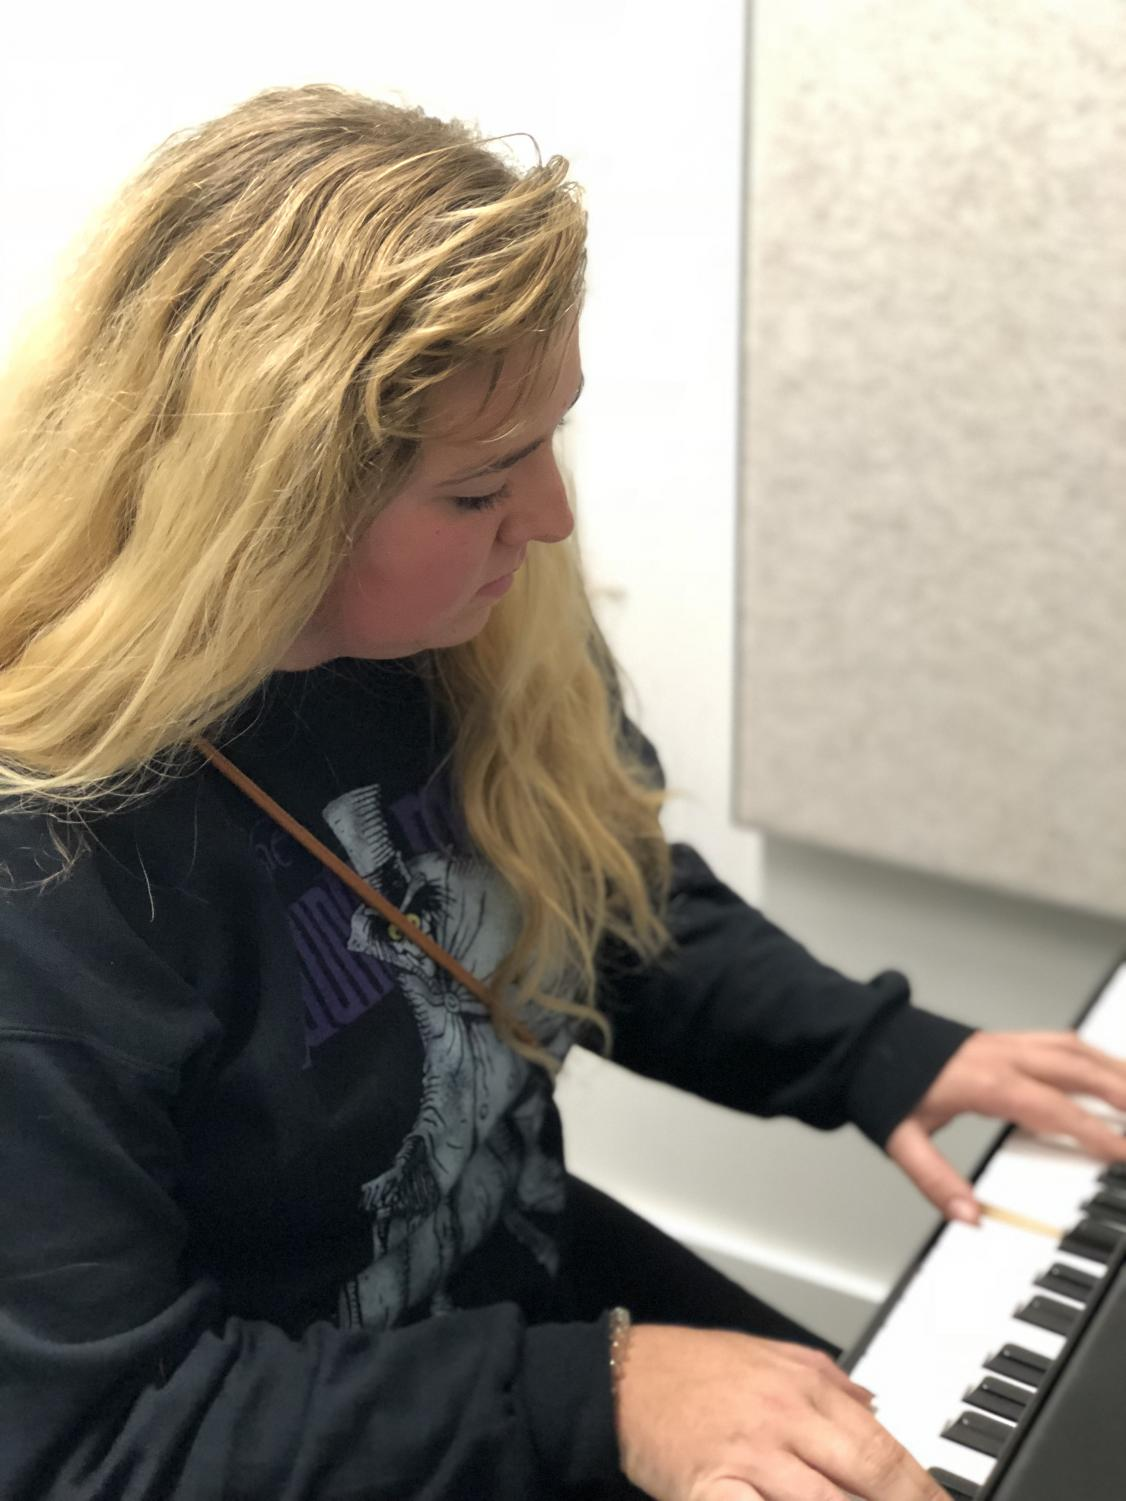 Maurice playing piano, one of her several musical specialties.